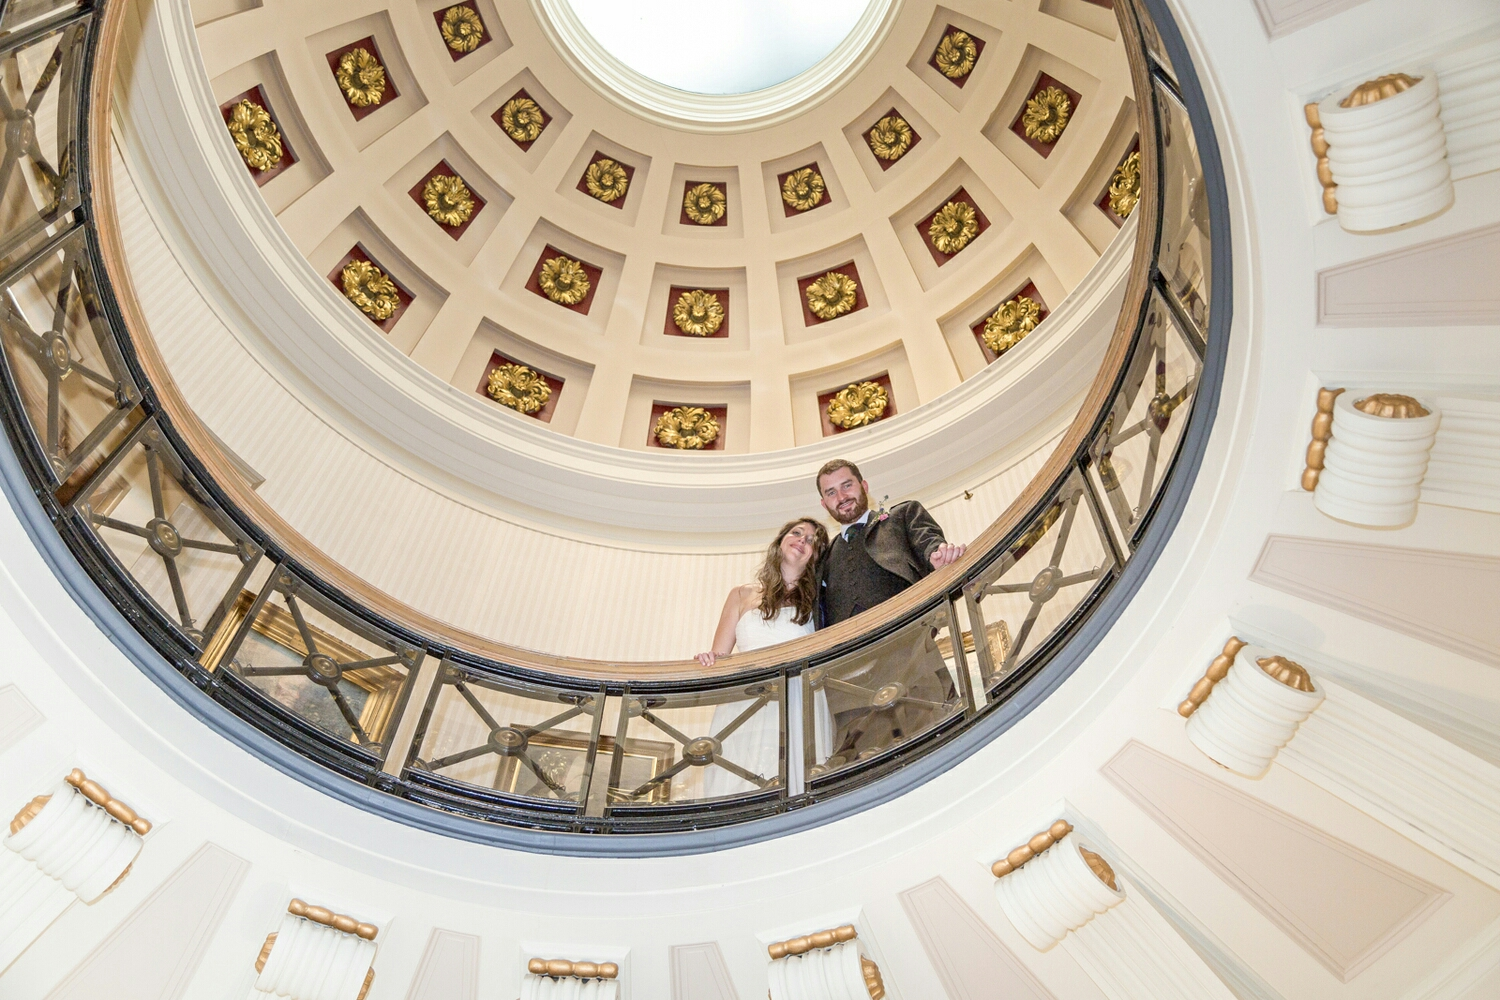 the beautiful skylight in Surgeons' Hall makes for a dramatic photo opportunity.